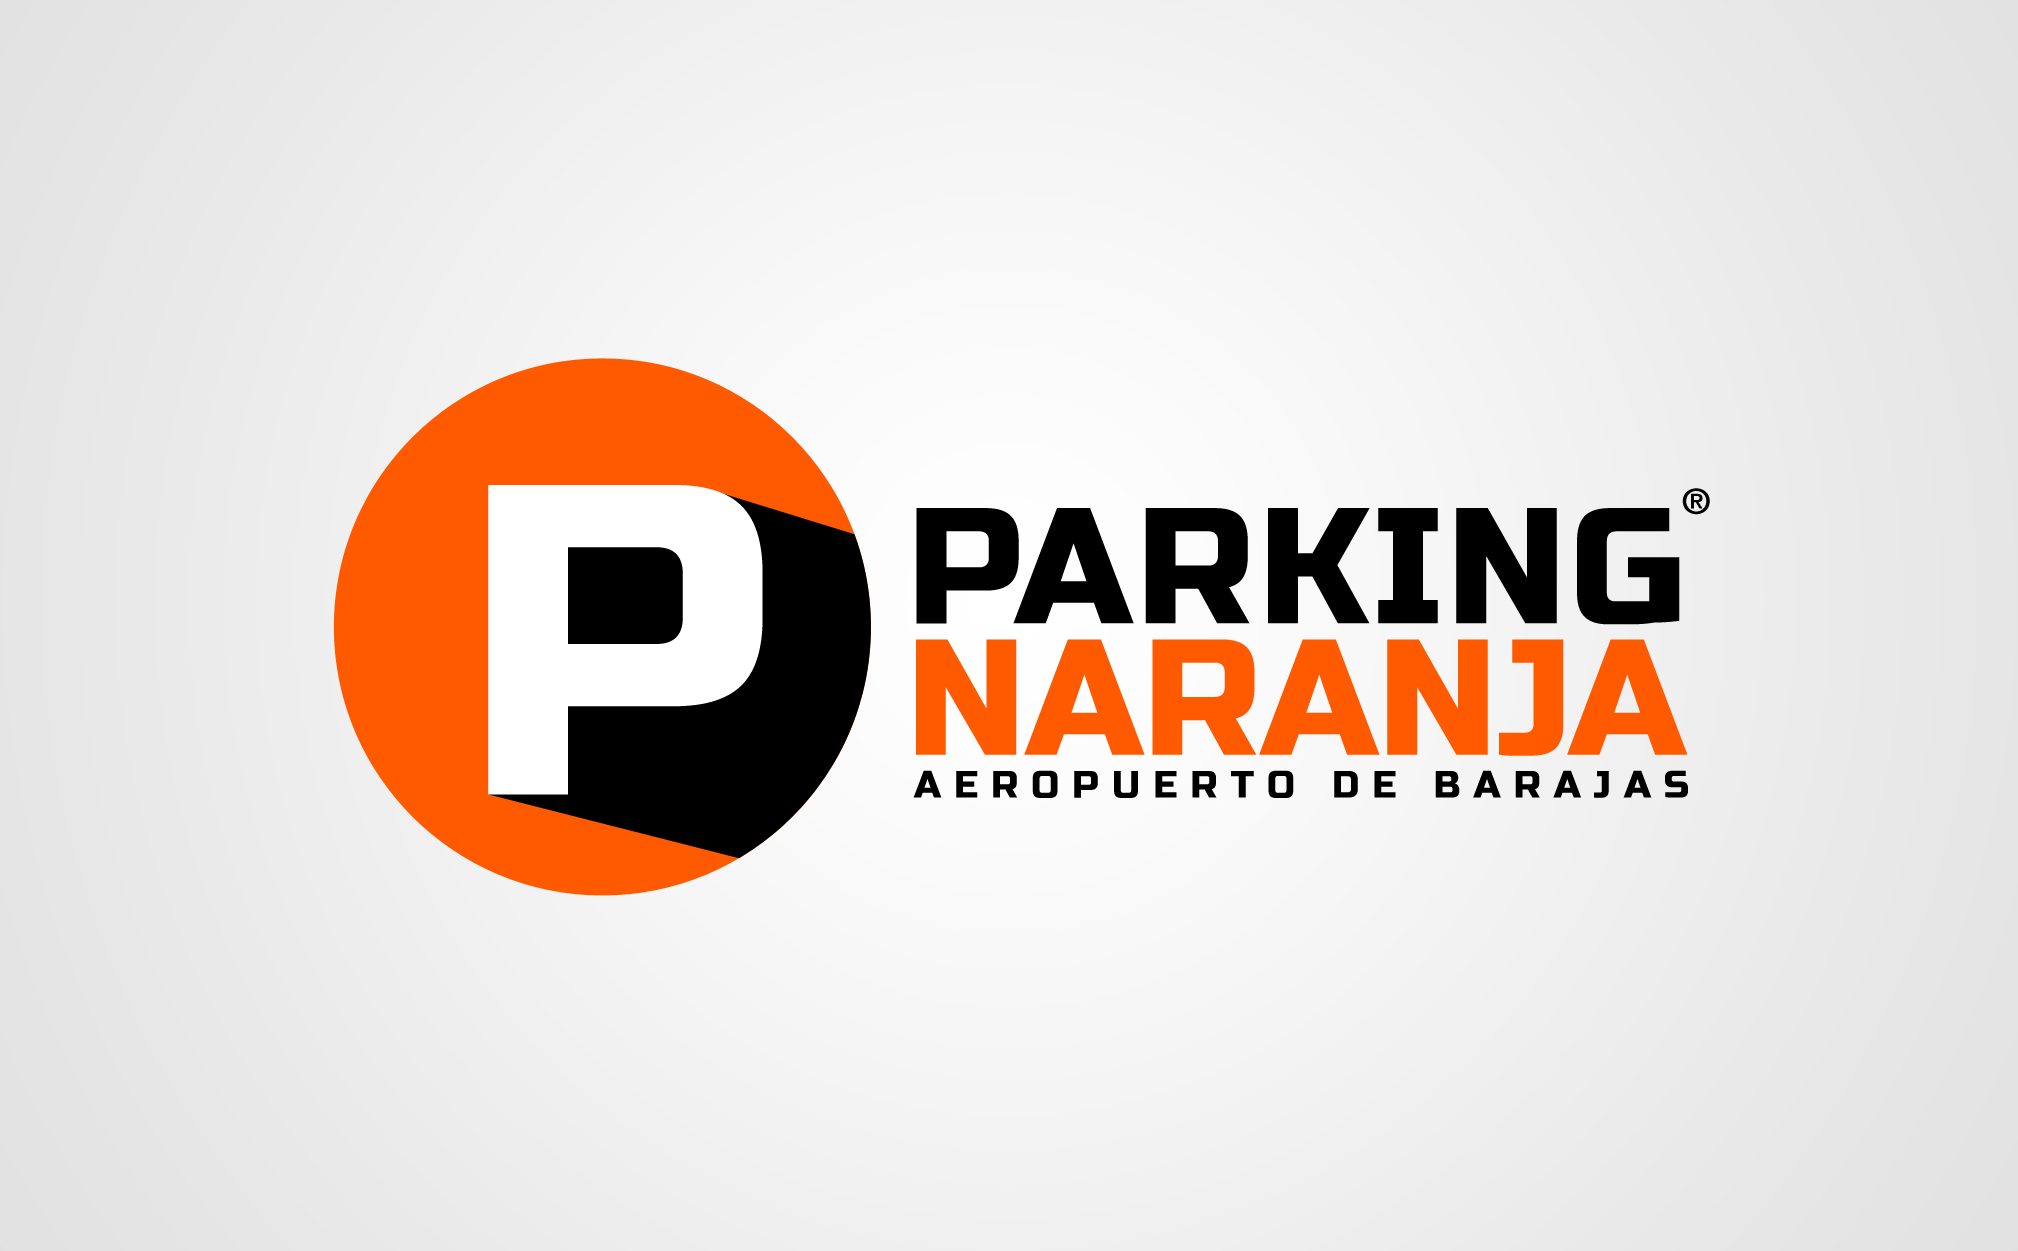 Parking Naranja